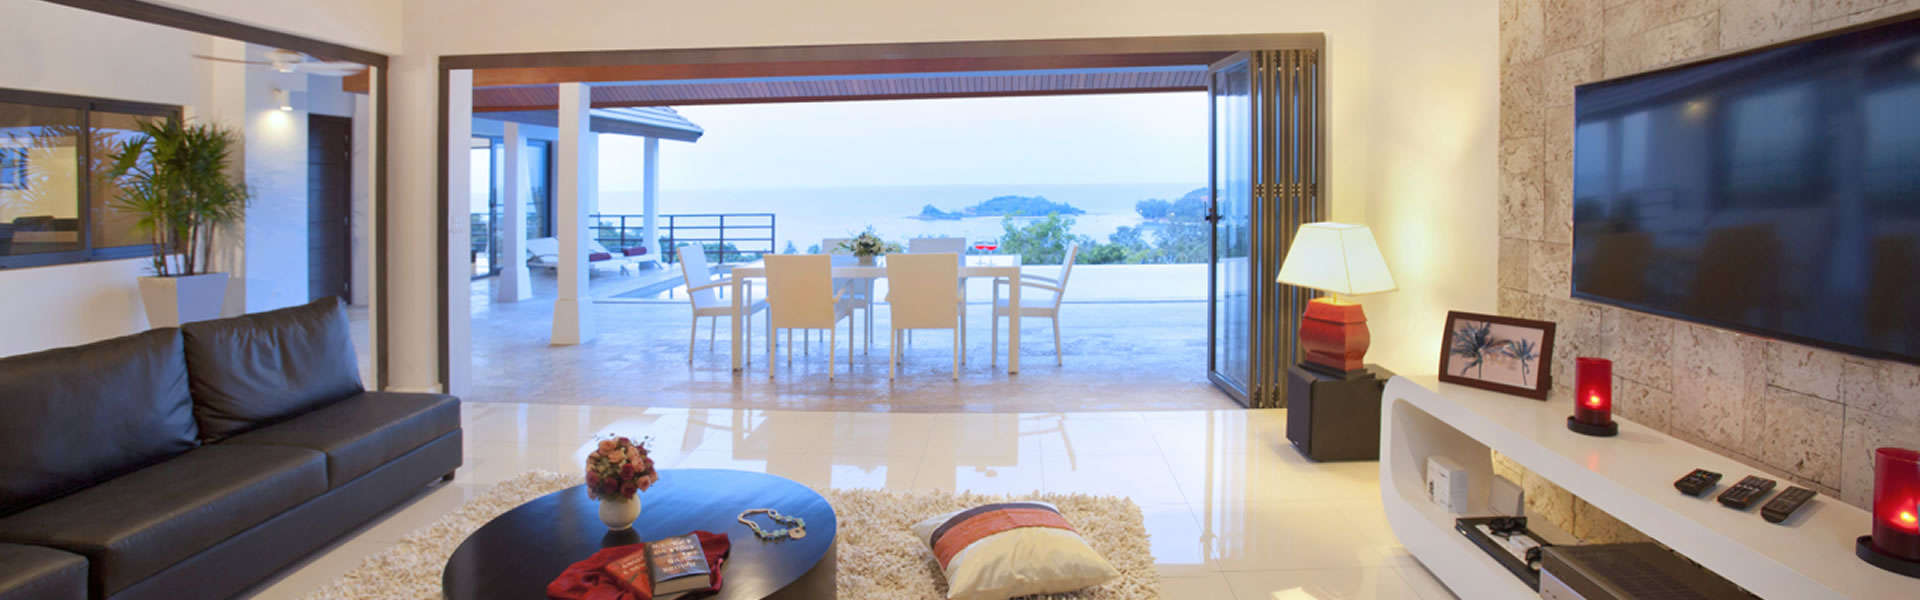 Samui villa with great view